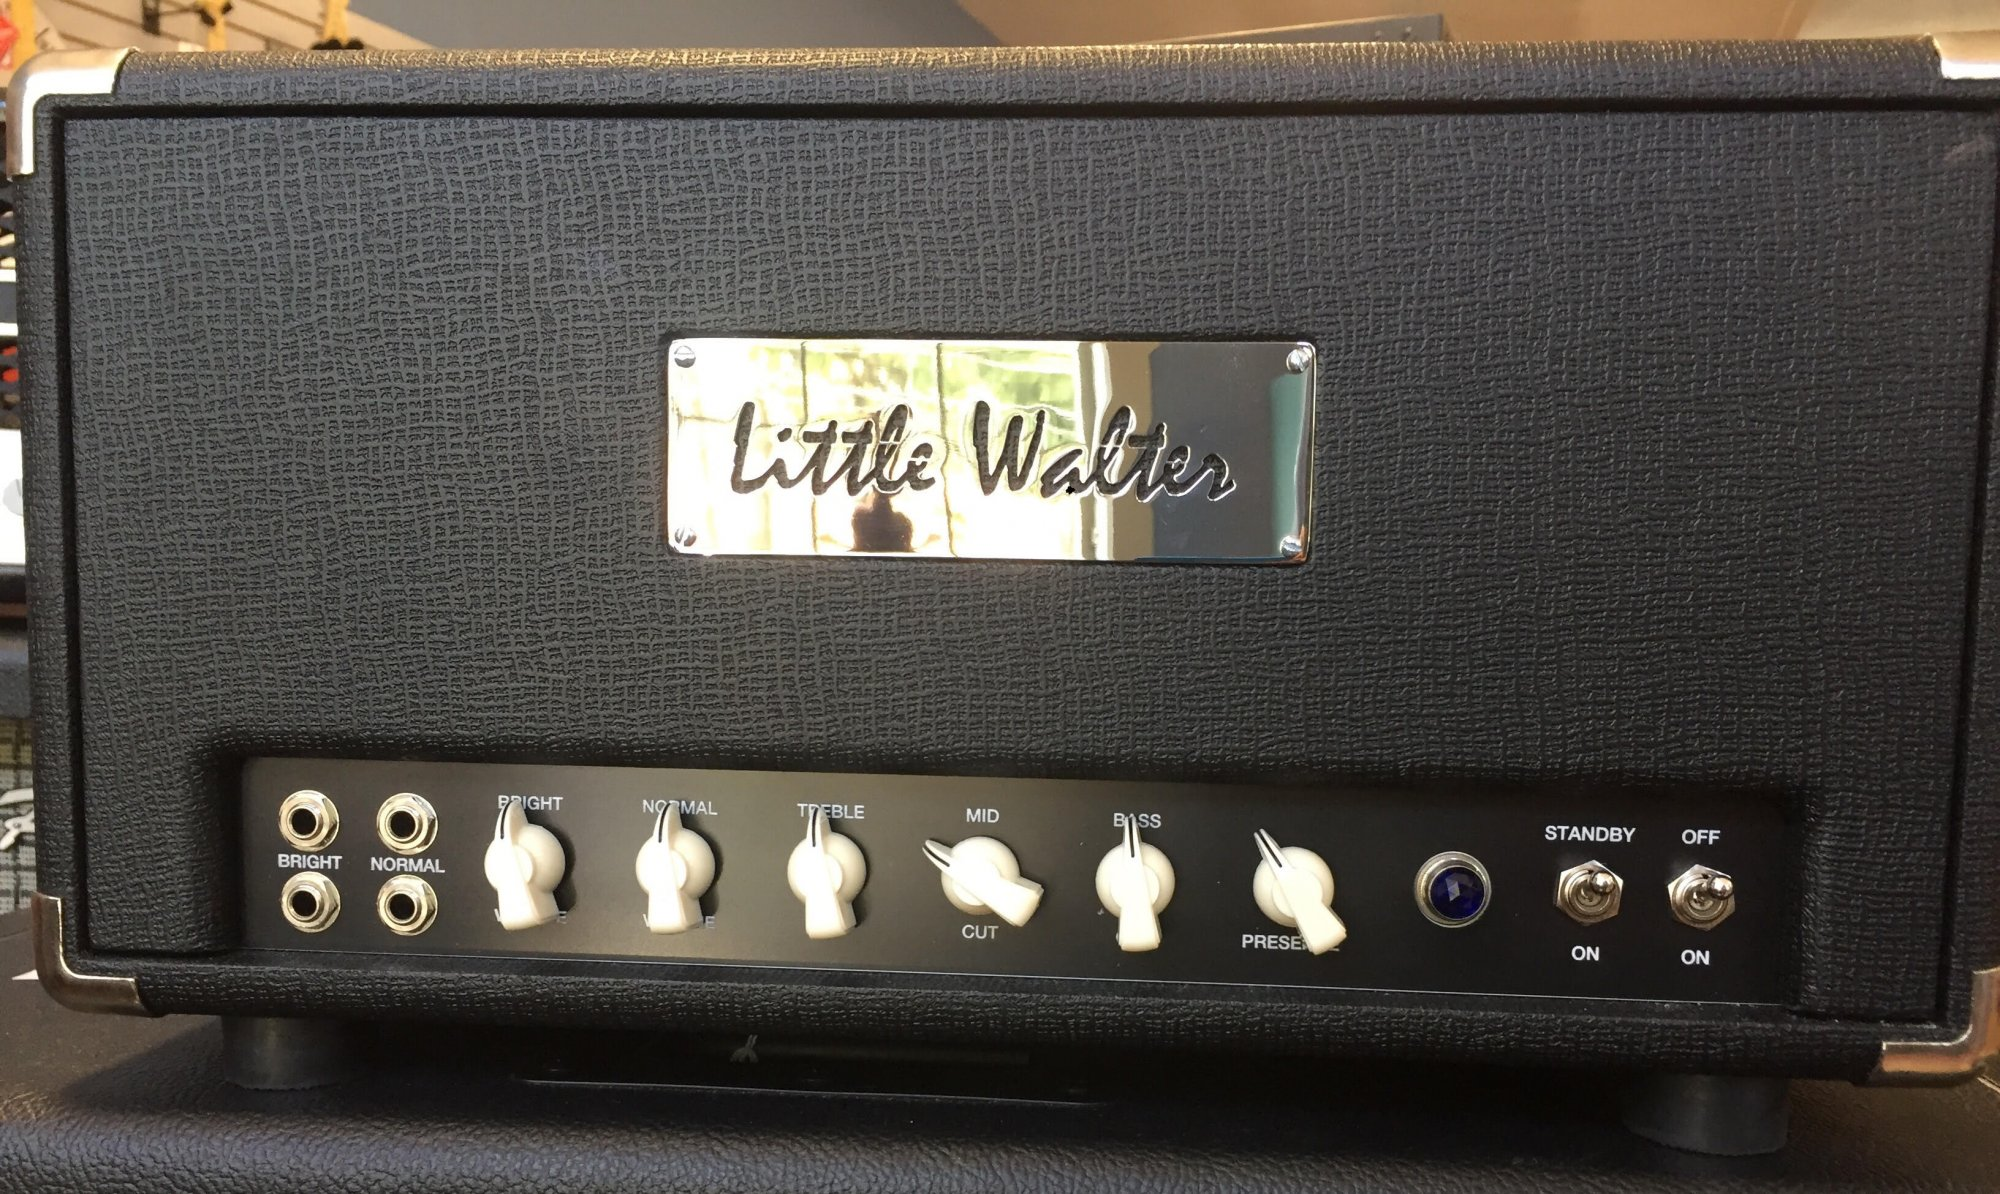 Little Walter The 59, 50 watt